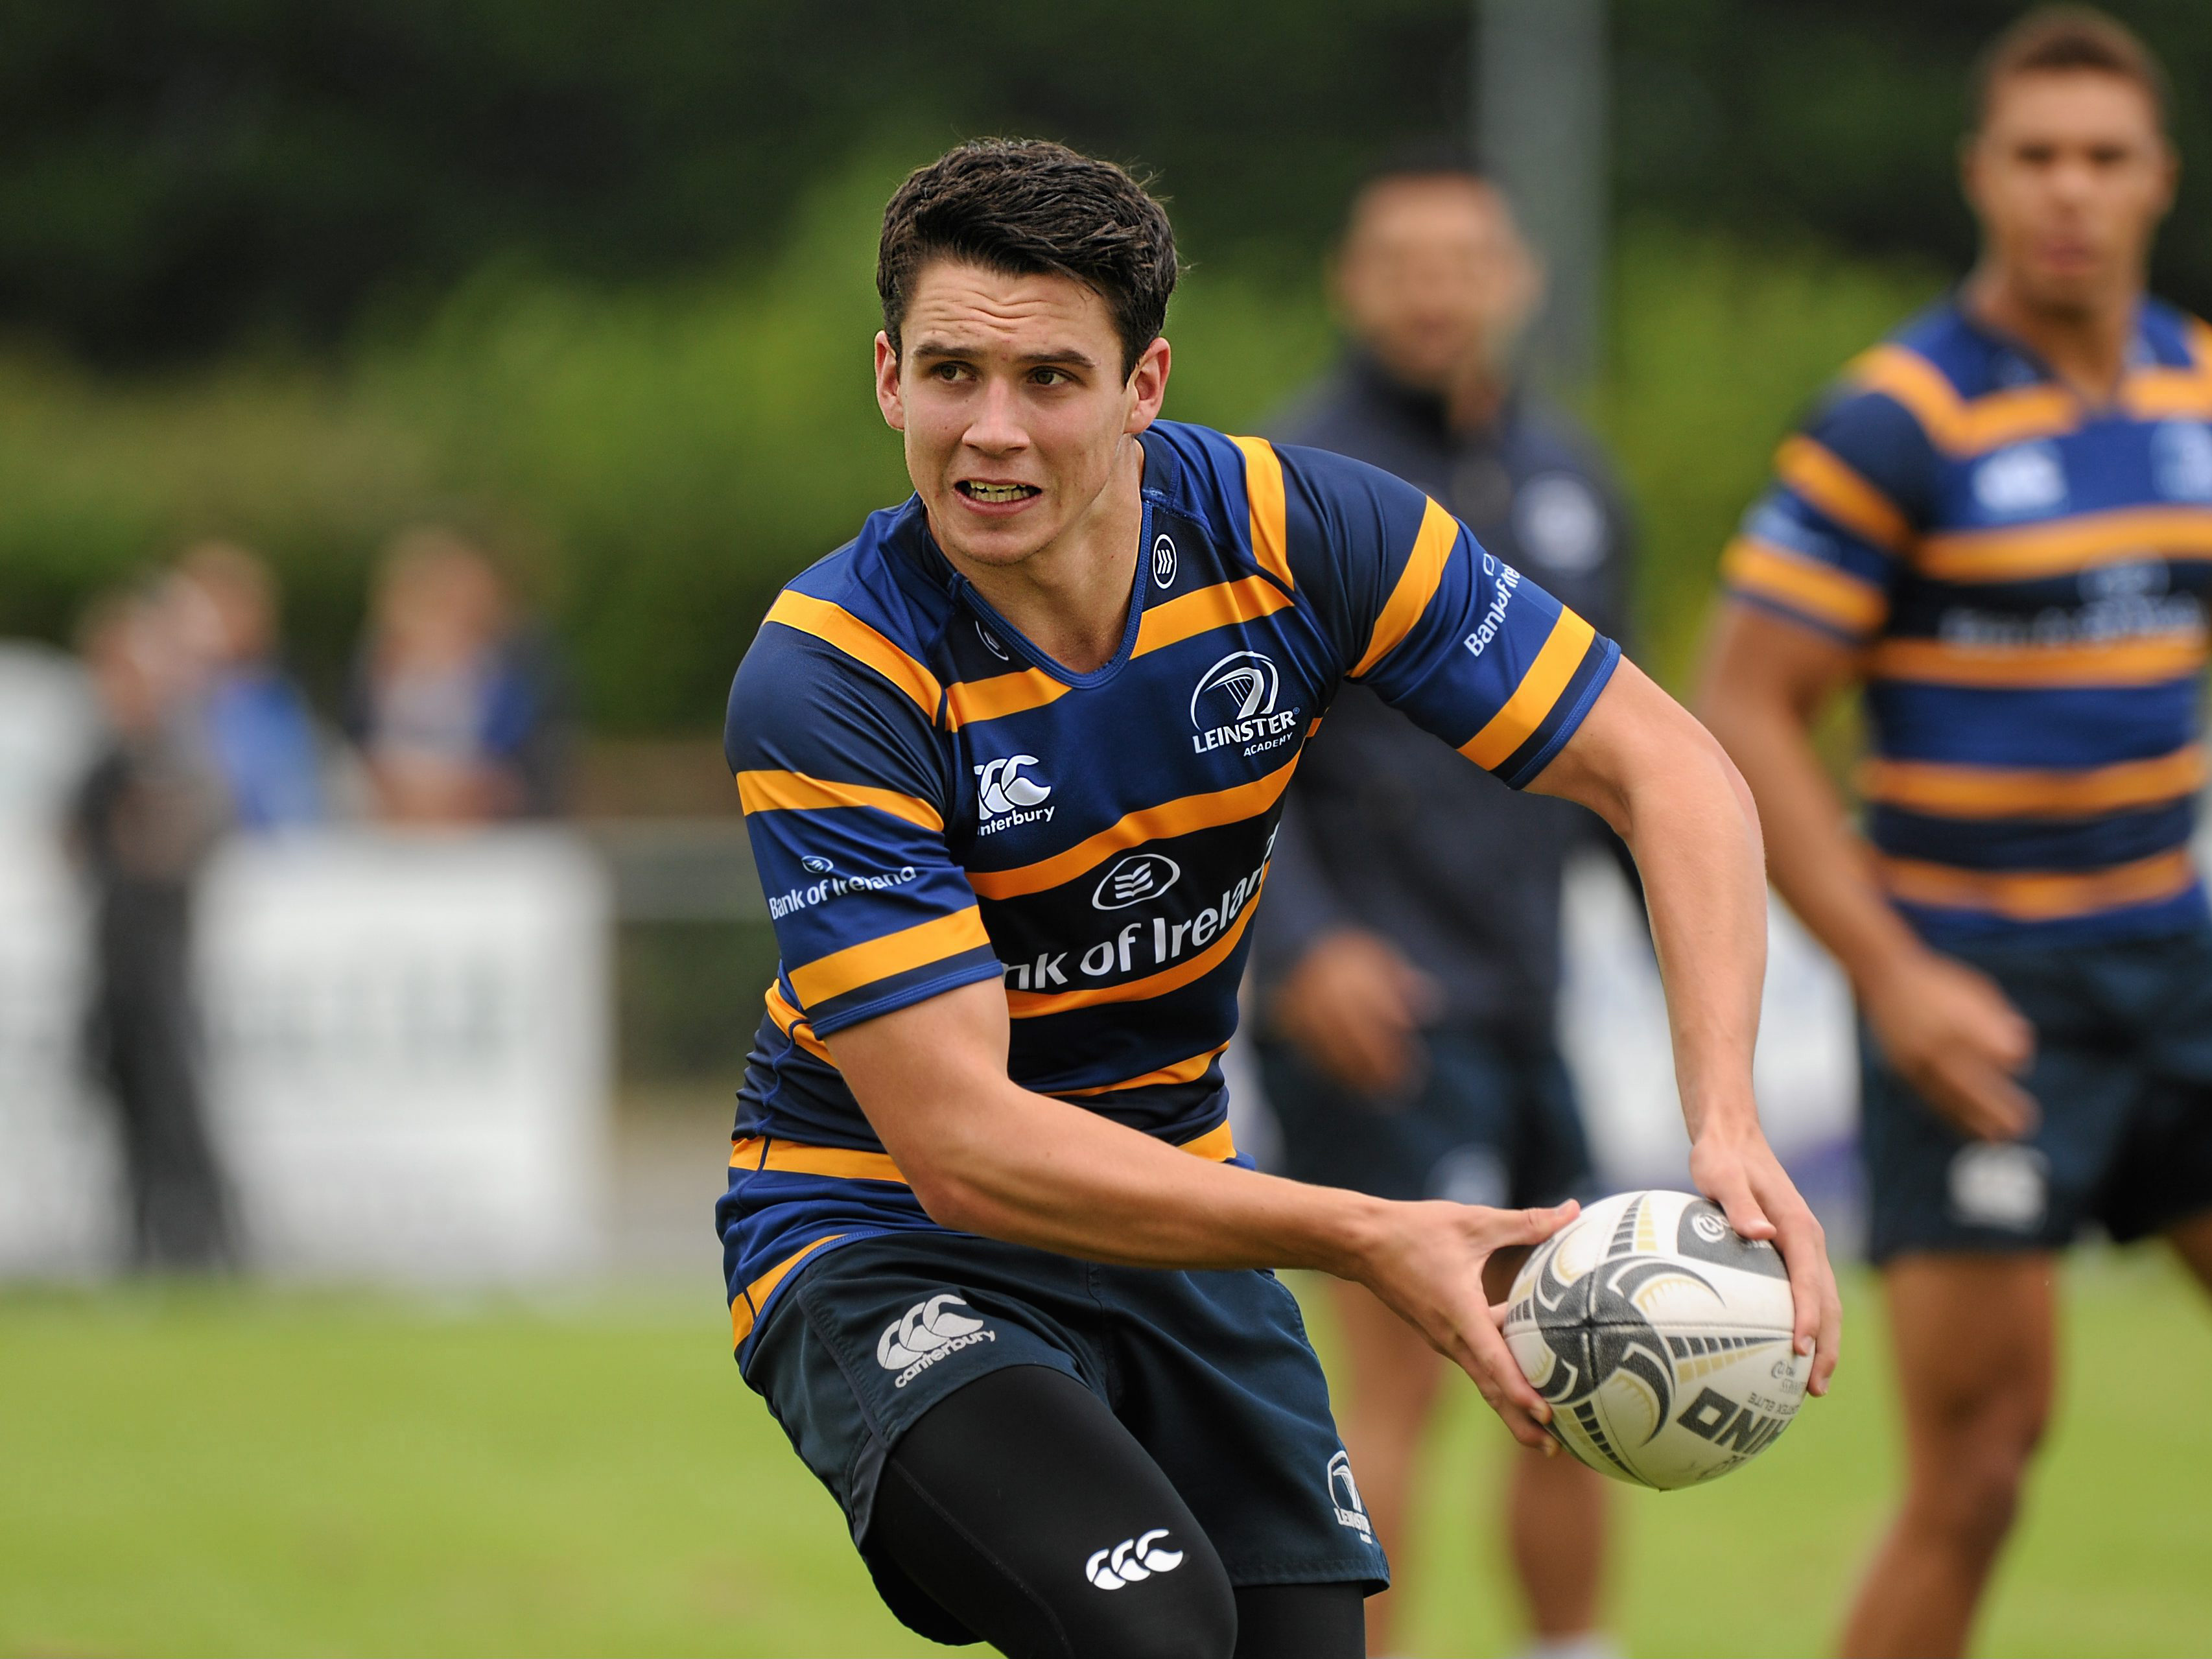 Carbery to make European debut